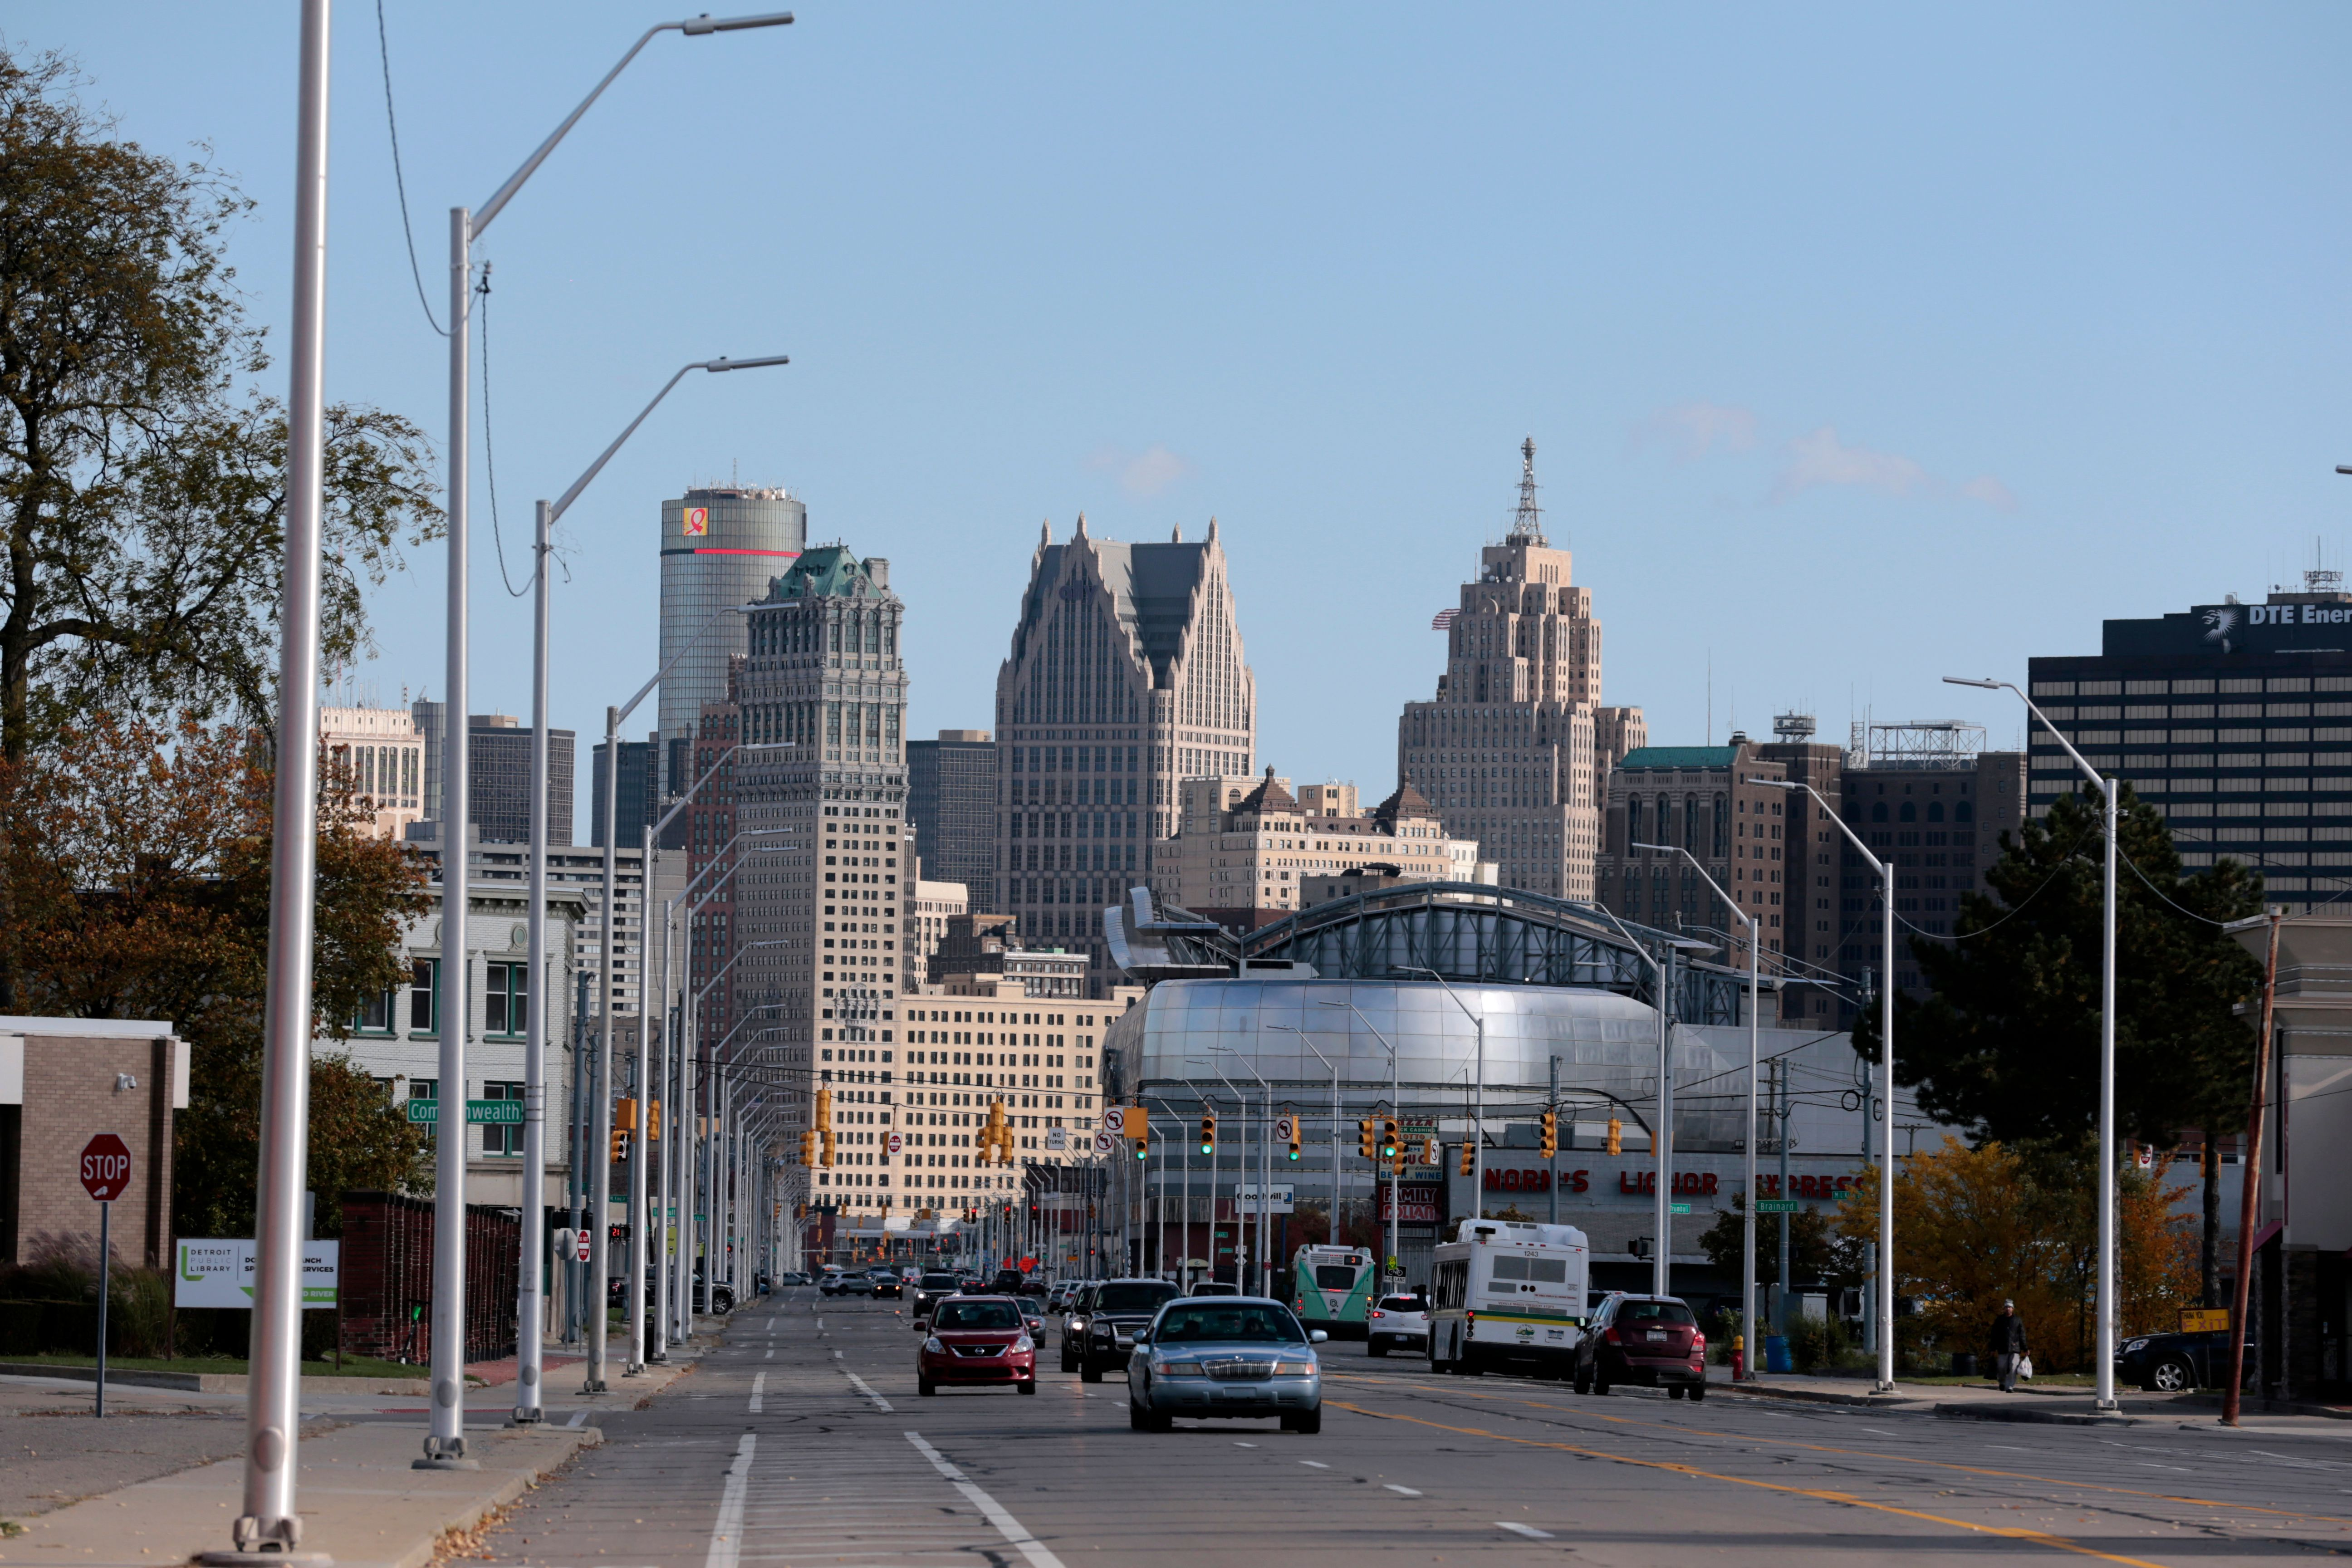 The Detroit, Mich., skyline is seen from Grand River Avenue on October 23, 2019. A new study says Detroit is the most segregated metropolitan area in the U.S.